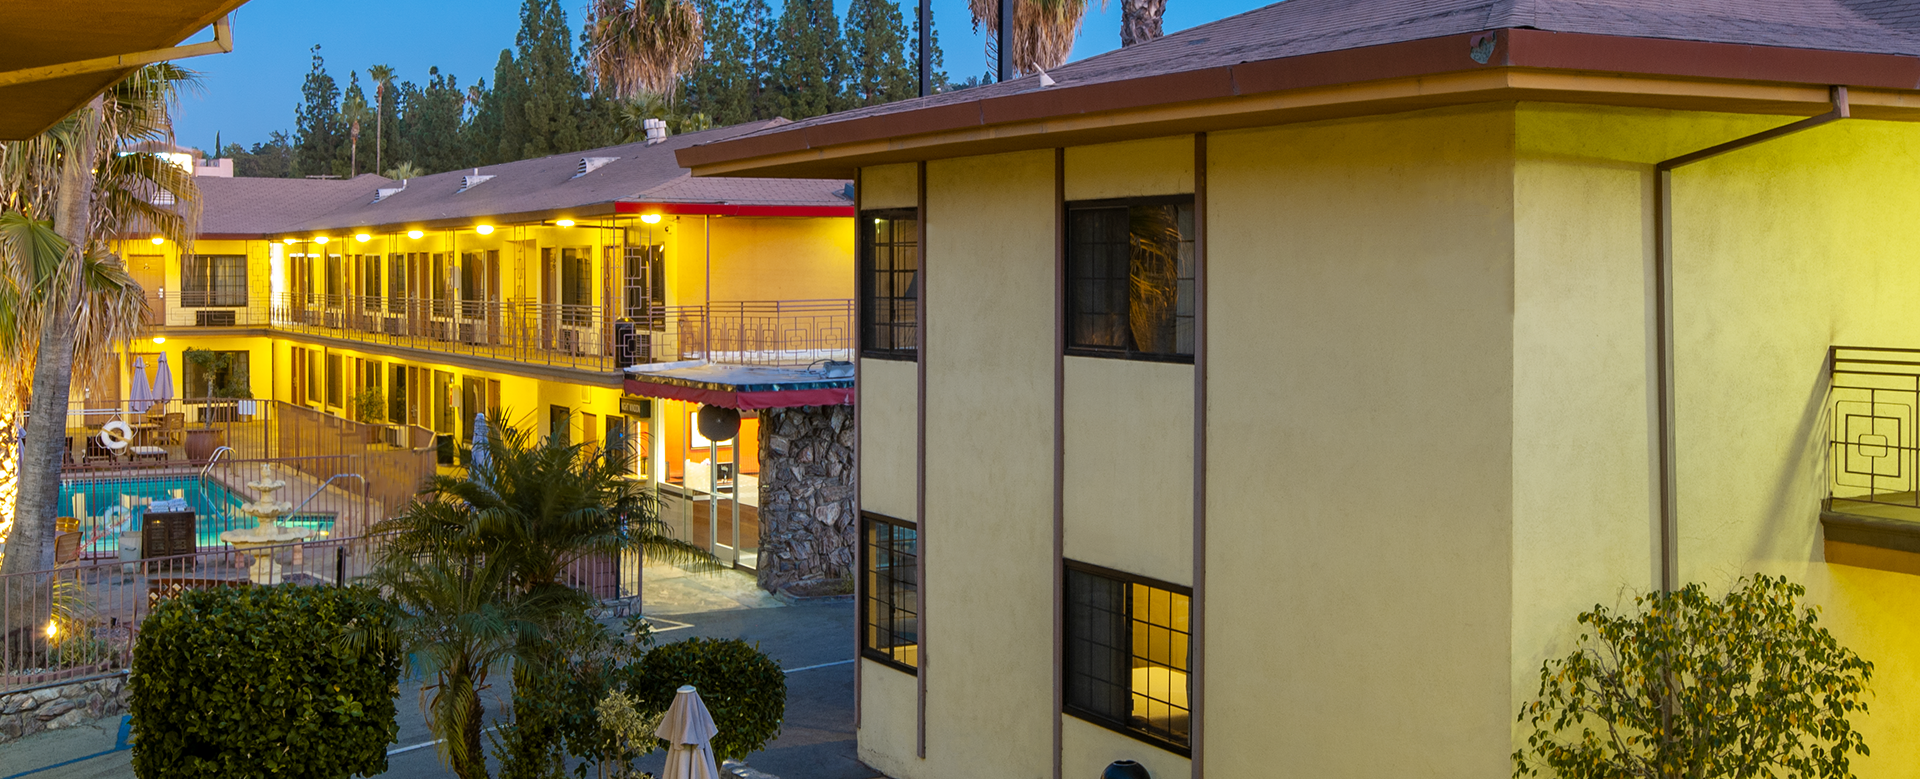 exterior building view of studio city court yard hotel